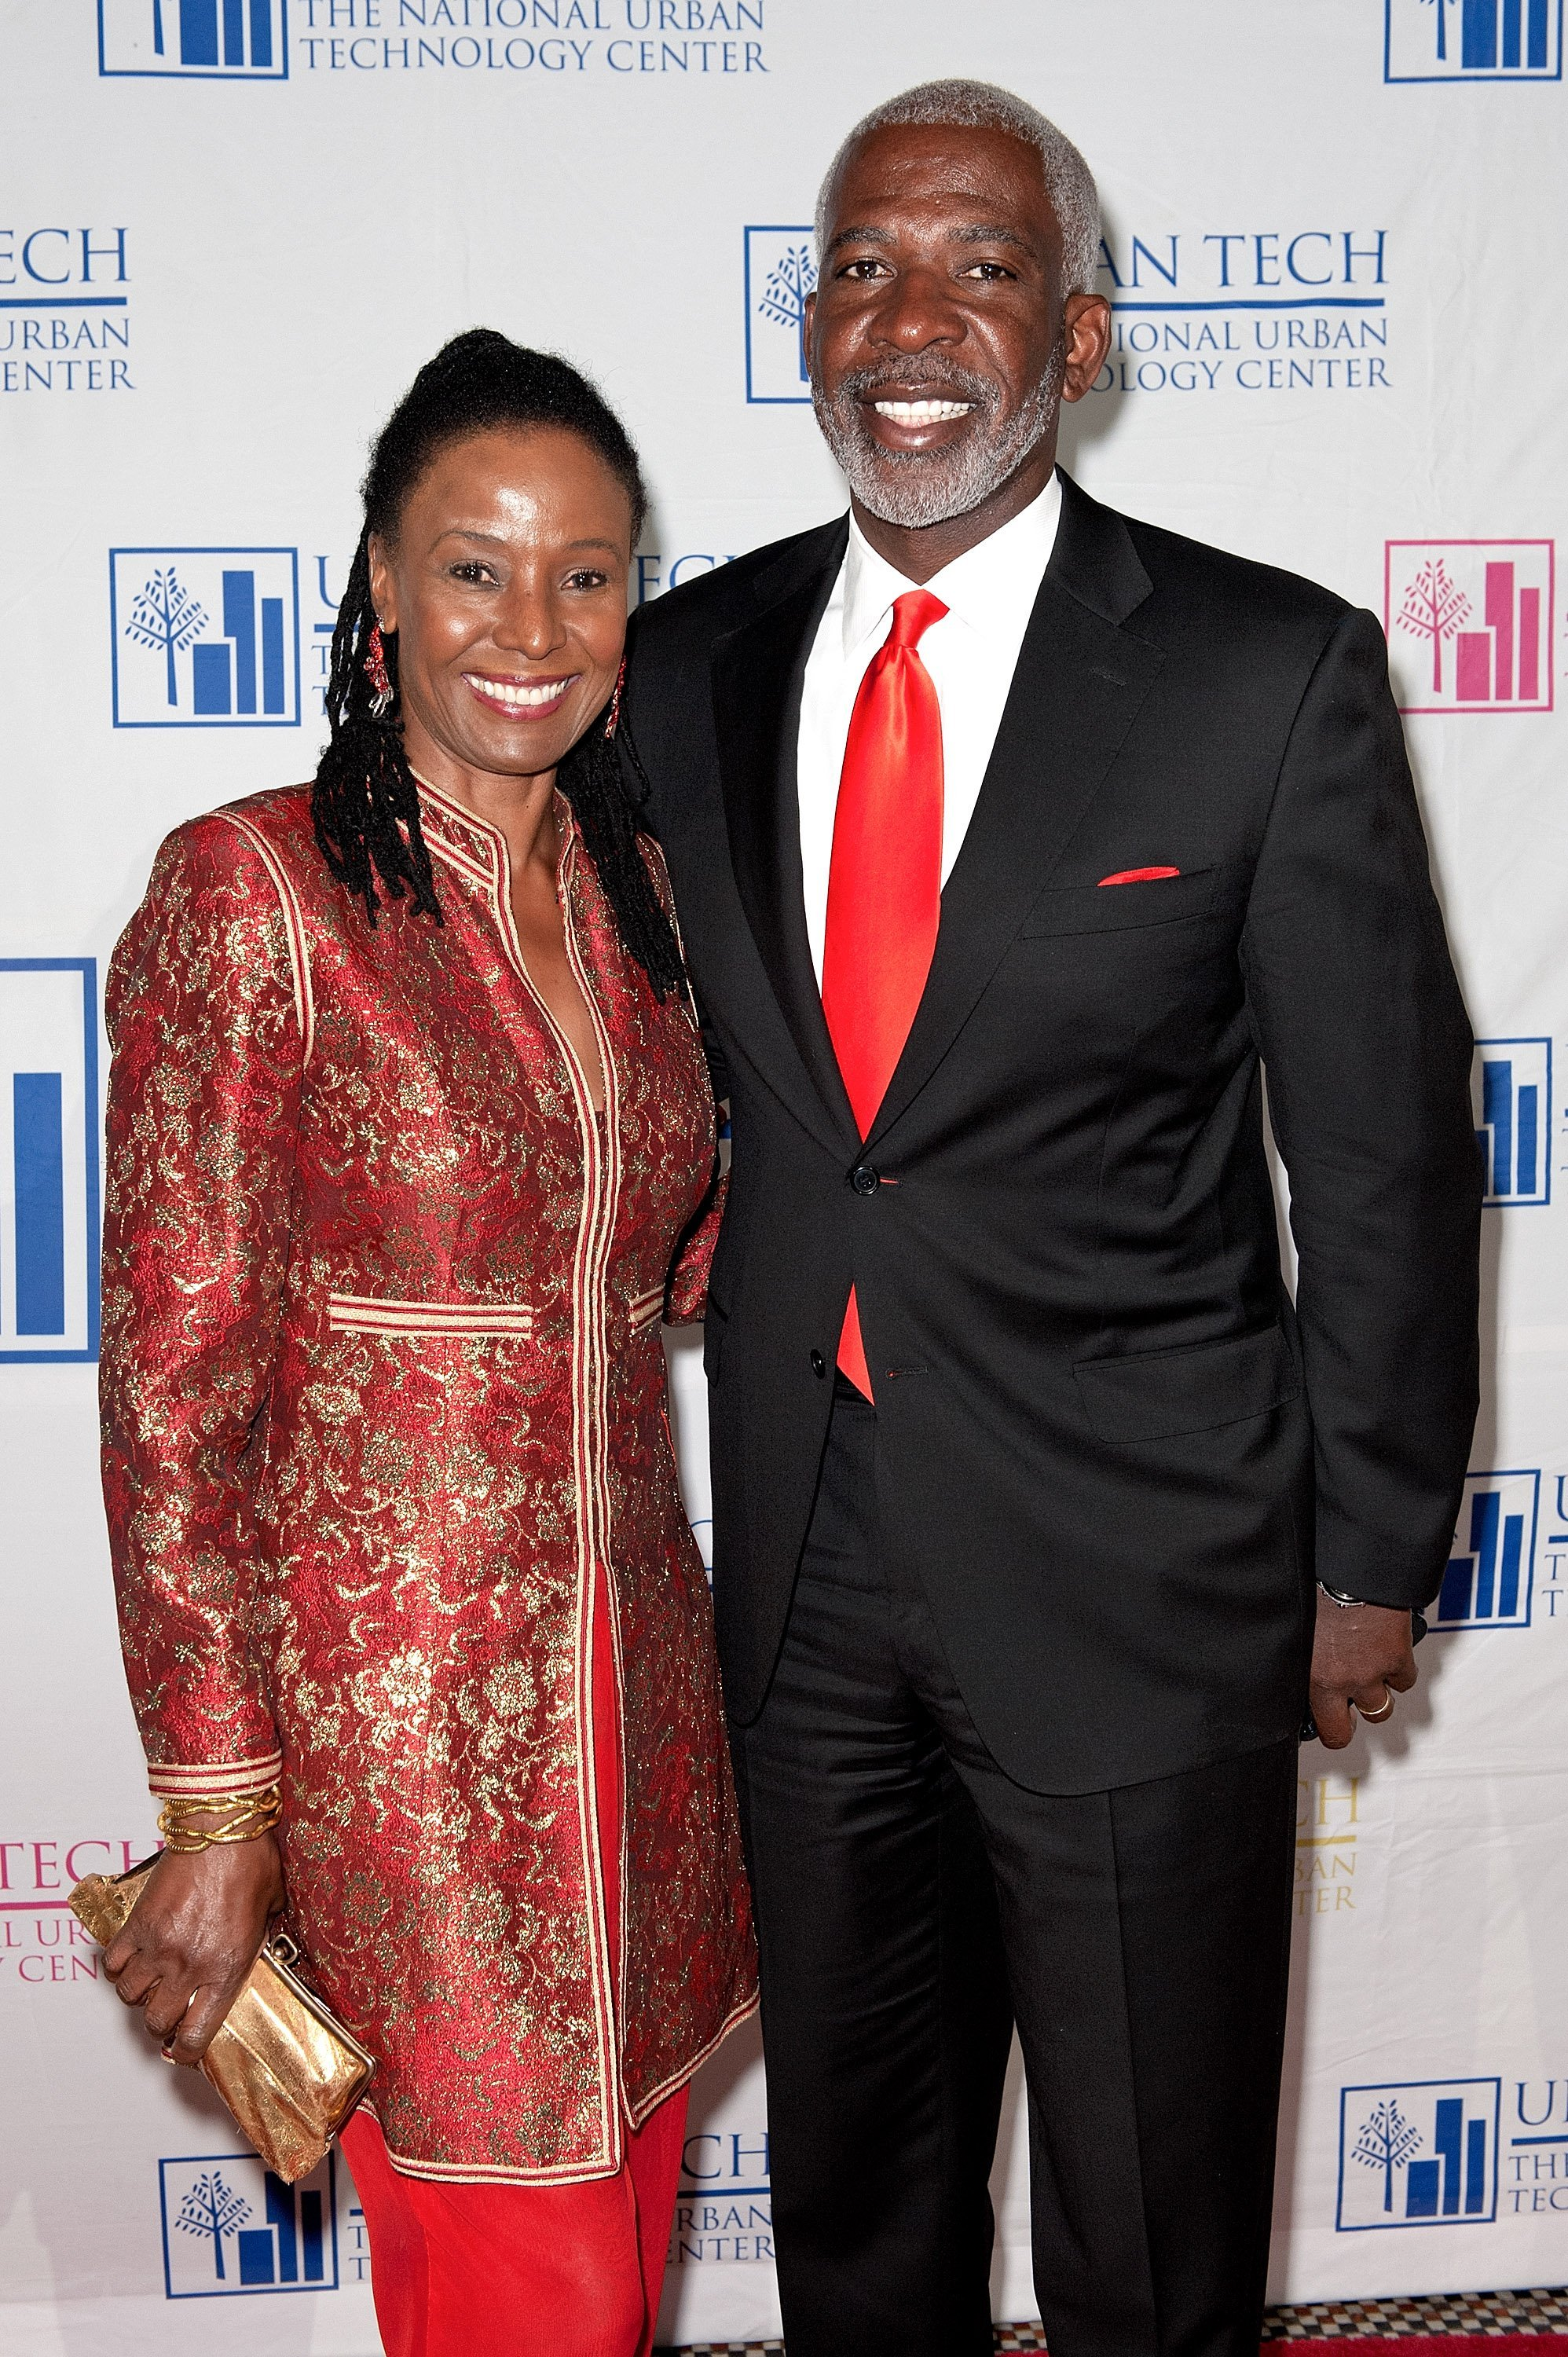 Lifestyle guru B. Smith and her husband Dan Gasby at the 17th Annual National Urban Technology Center Gala at Capitale in New York City | Photo: D Dipasupil/Getty Images